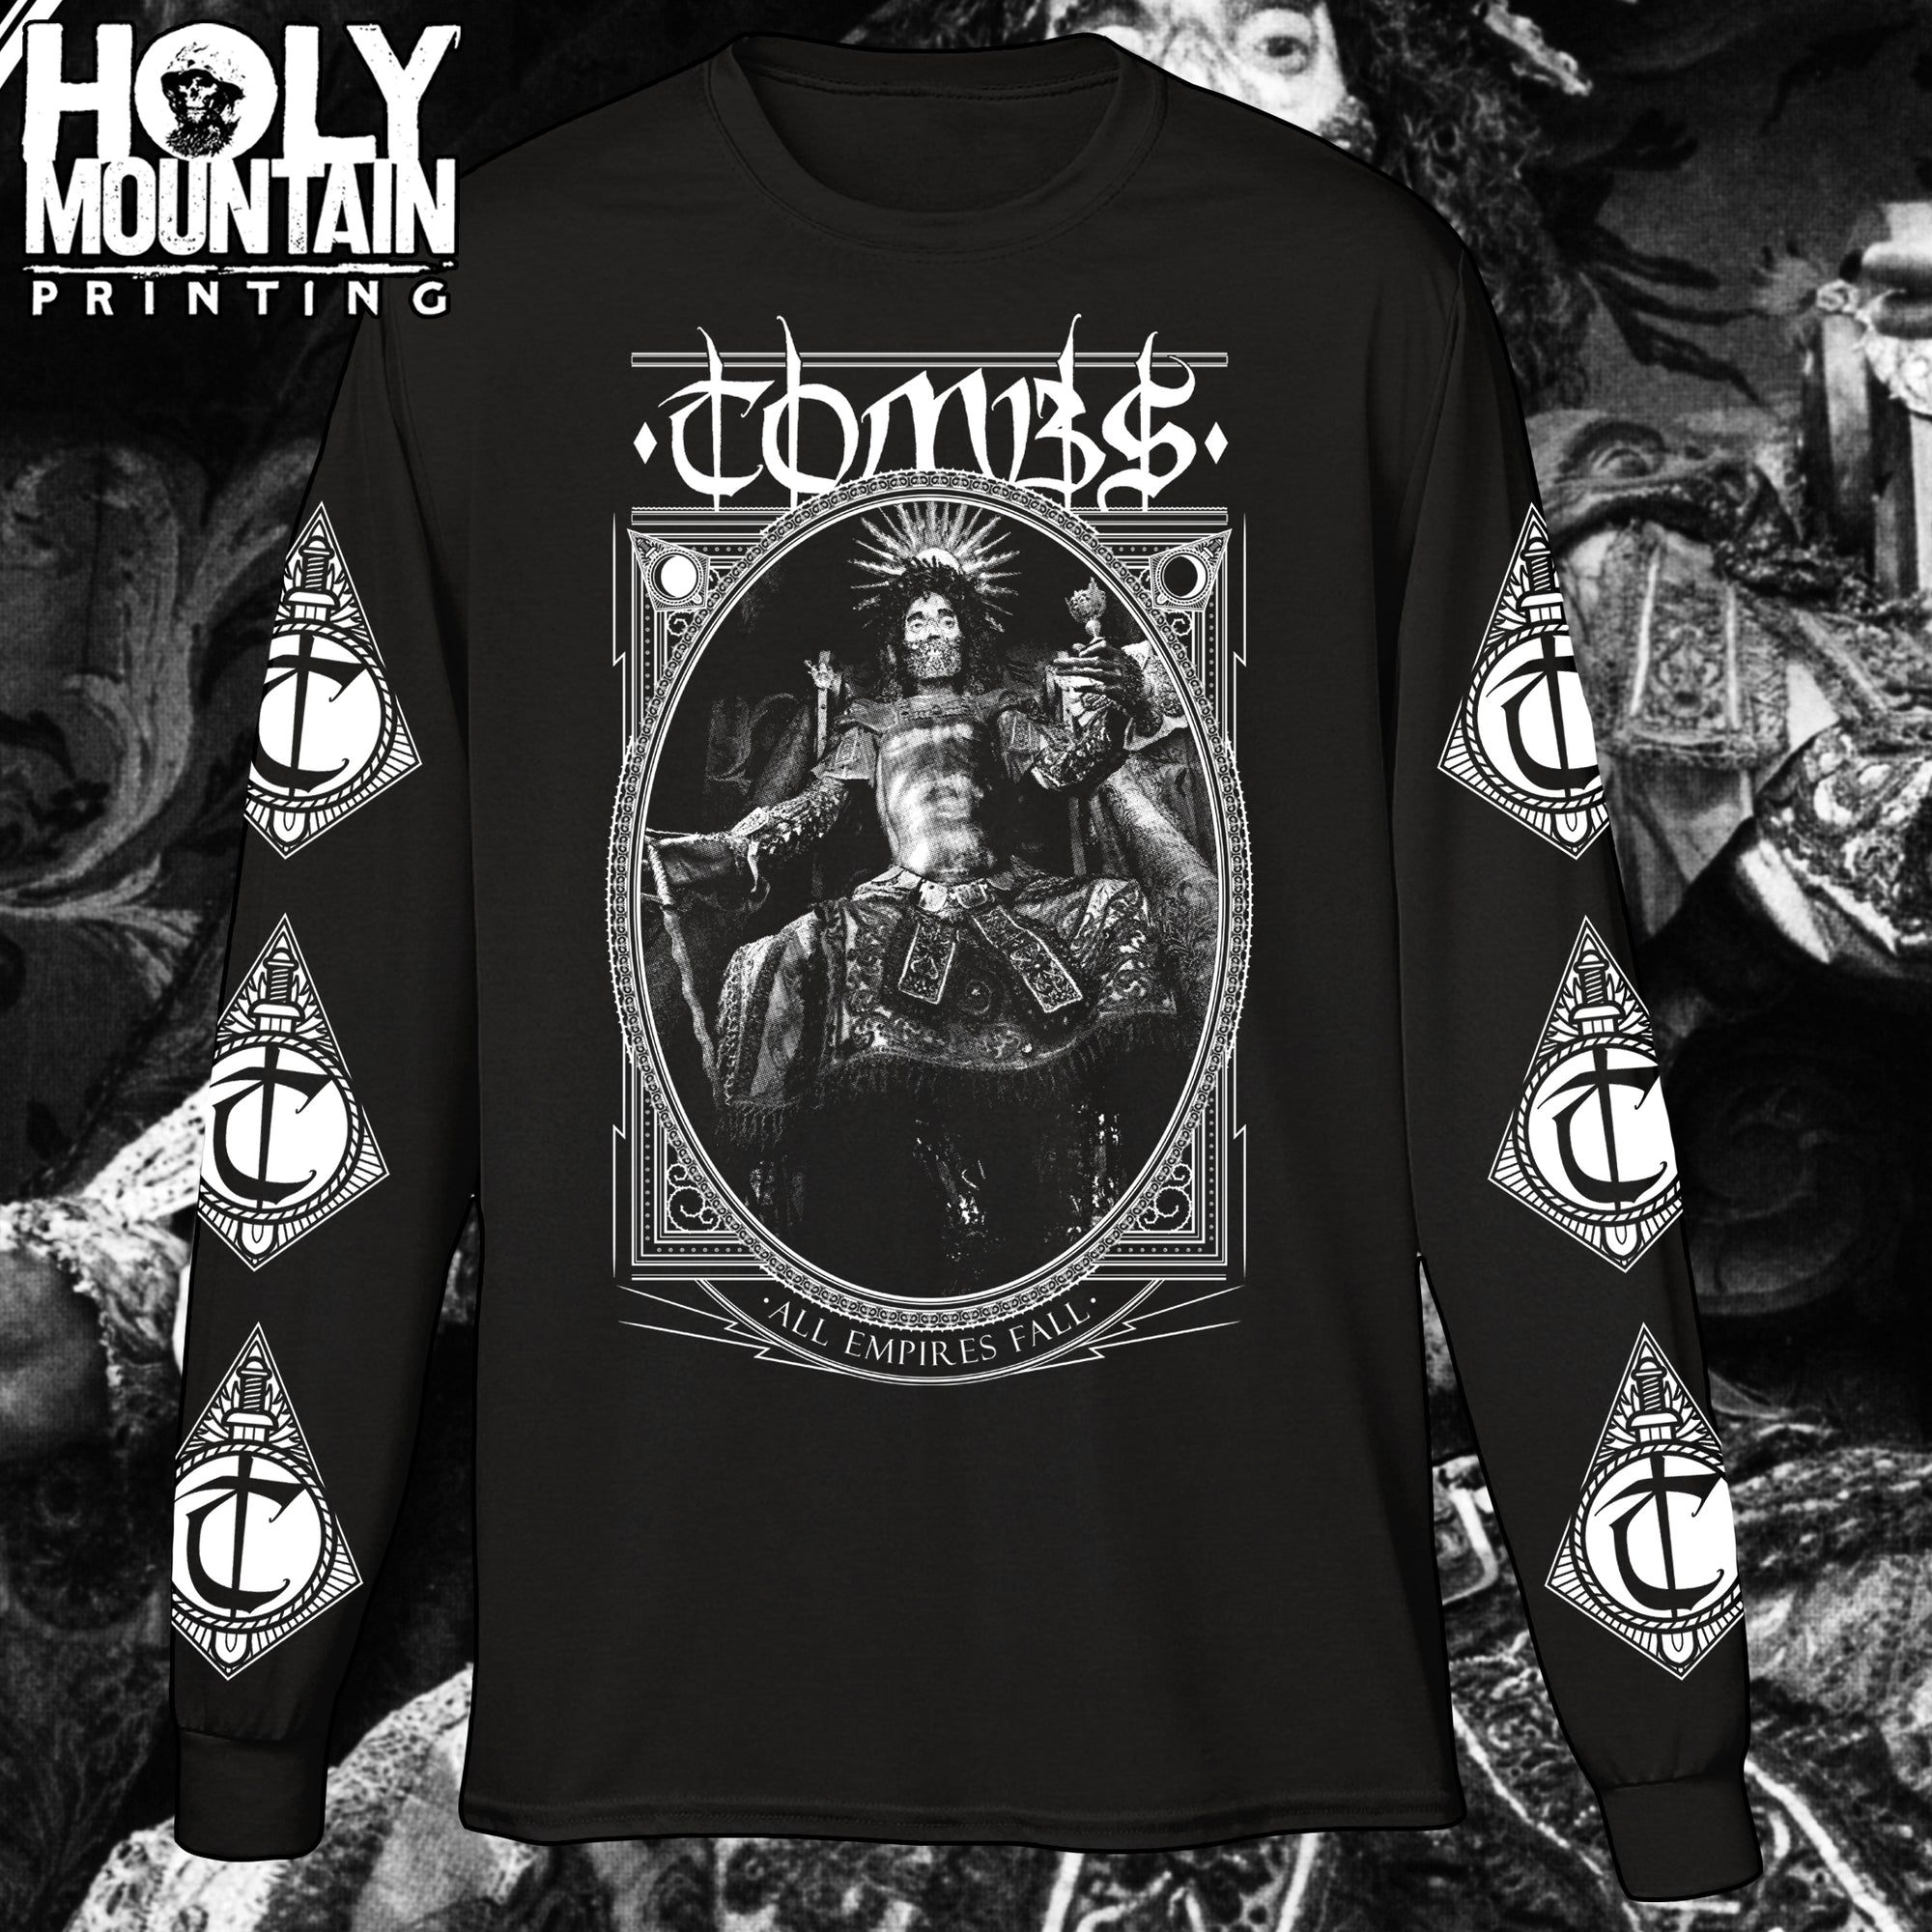 "TOMBS ""ALL EMPIRES FALL"" LONG SLEEVE SHIRT"